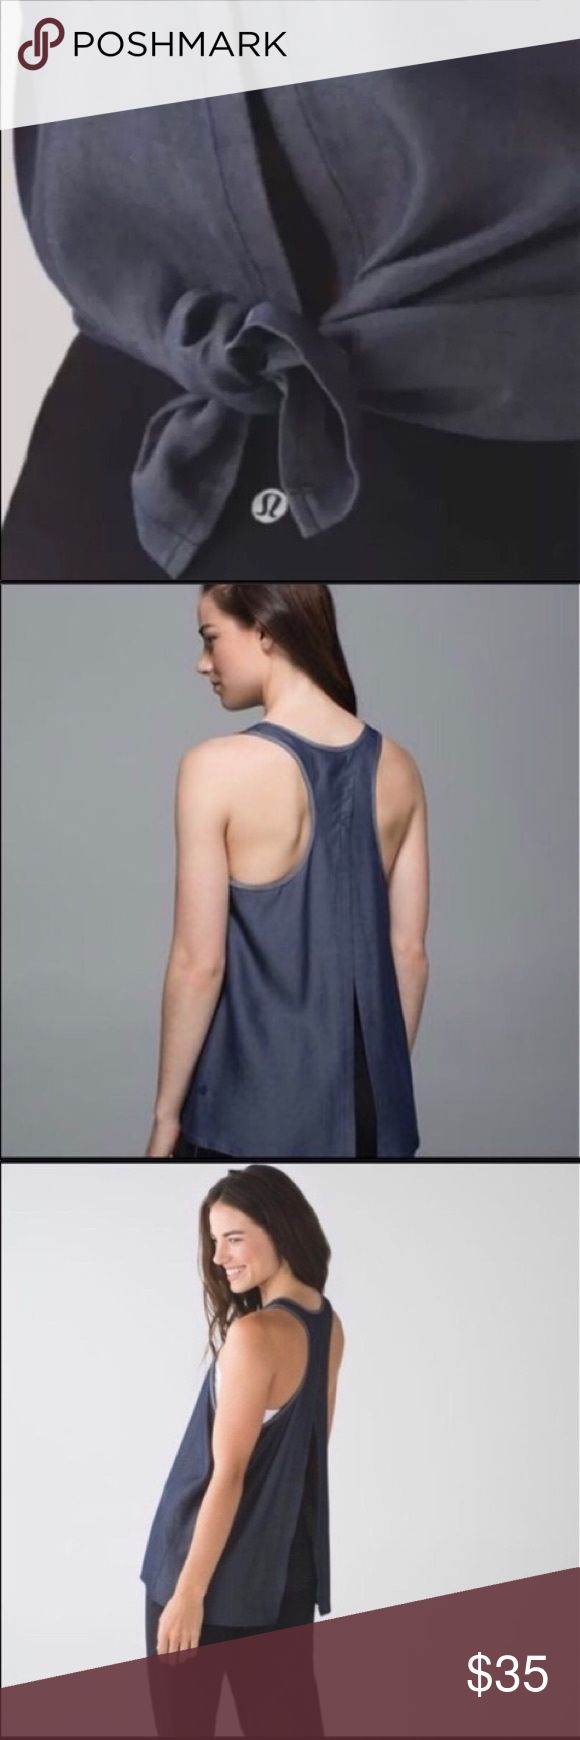 Lululemon All Tied Up Tank Dark Blue Grey Dark denim color. Great Tencel lightweight breathable material. Logo on the bottom of Tank. Versatile. Worn once and hung dry. lululemon athletica Tops Tank Tops